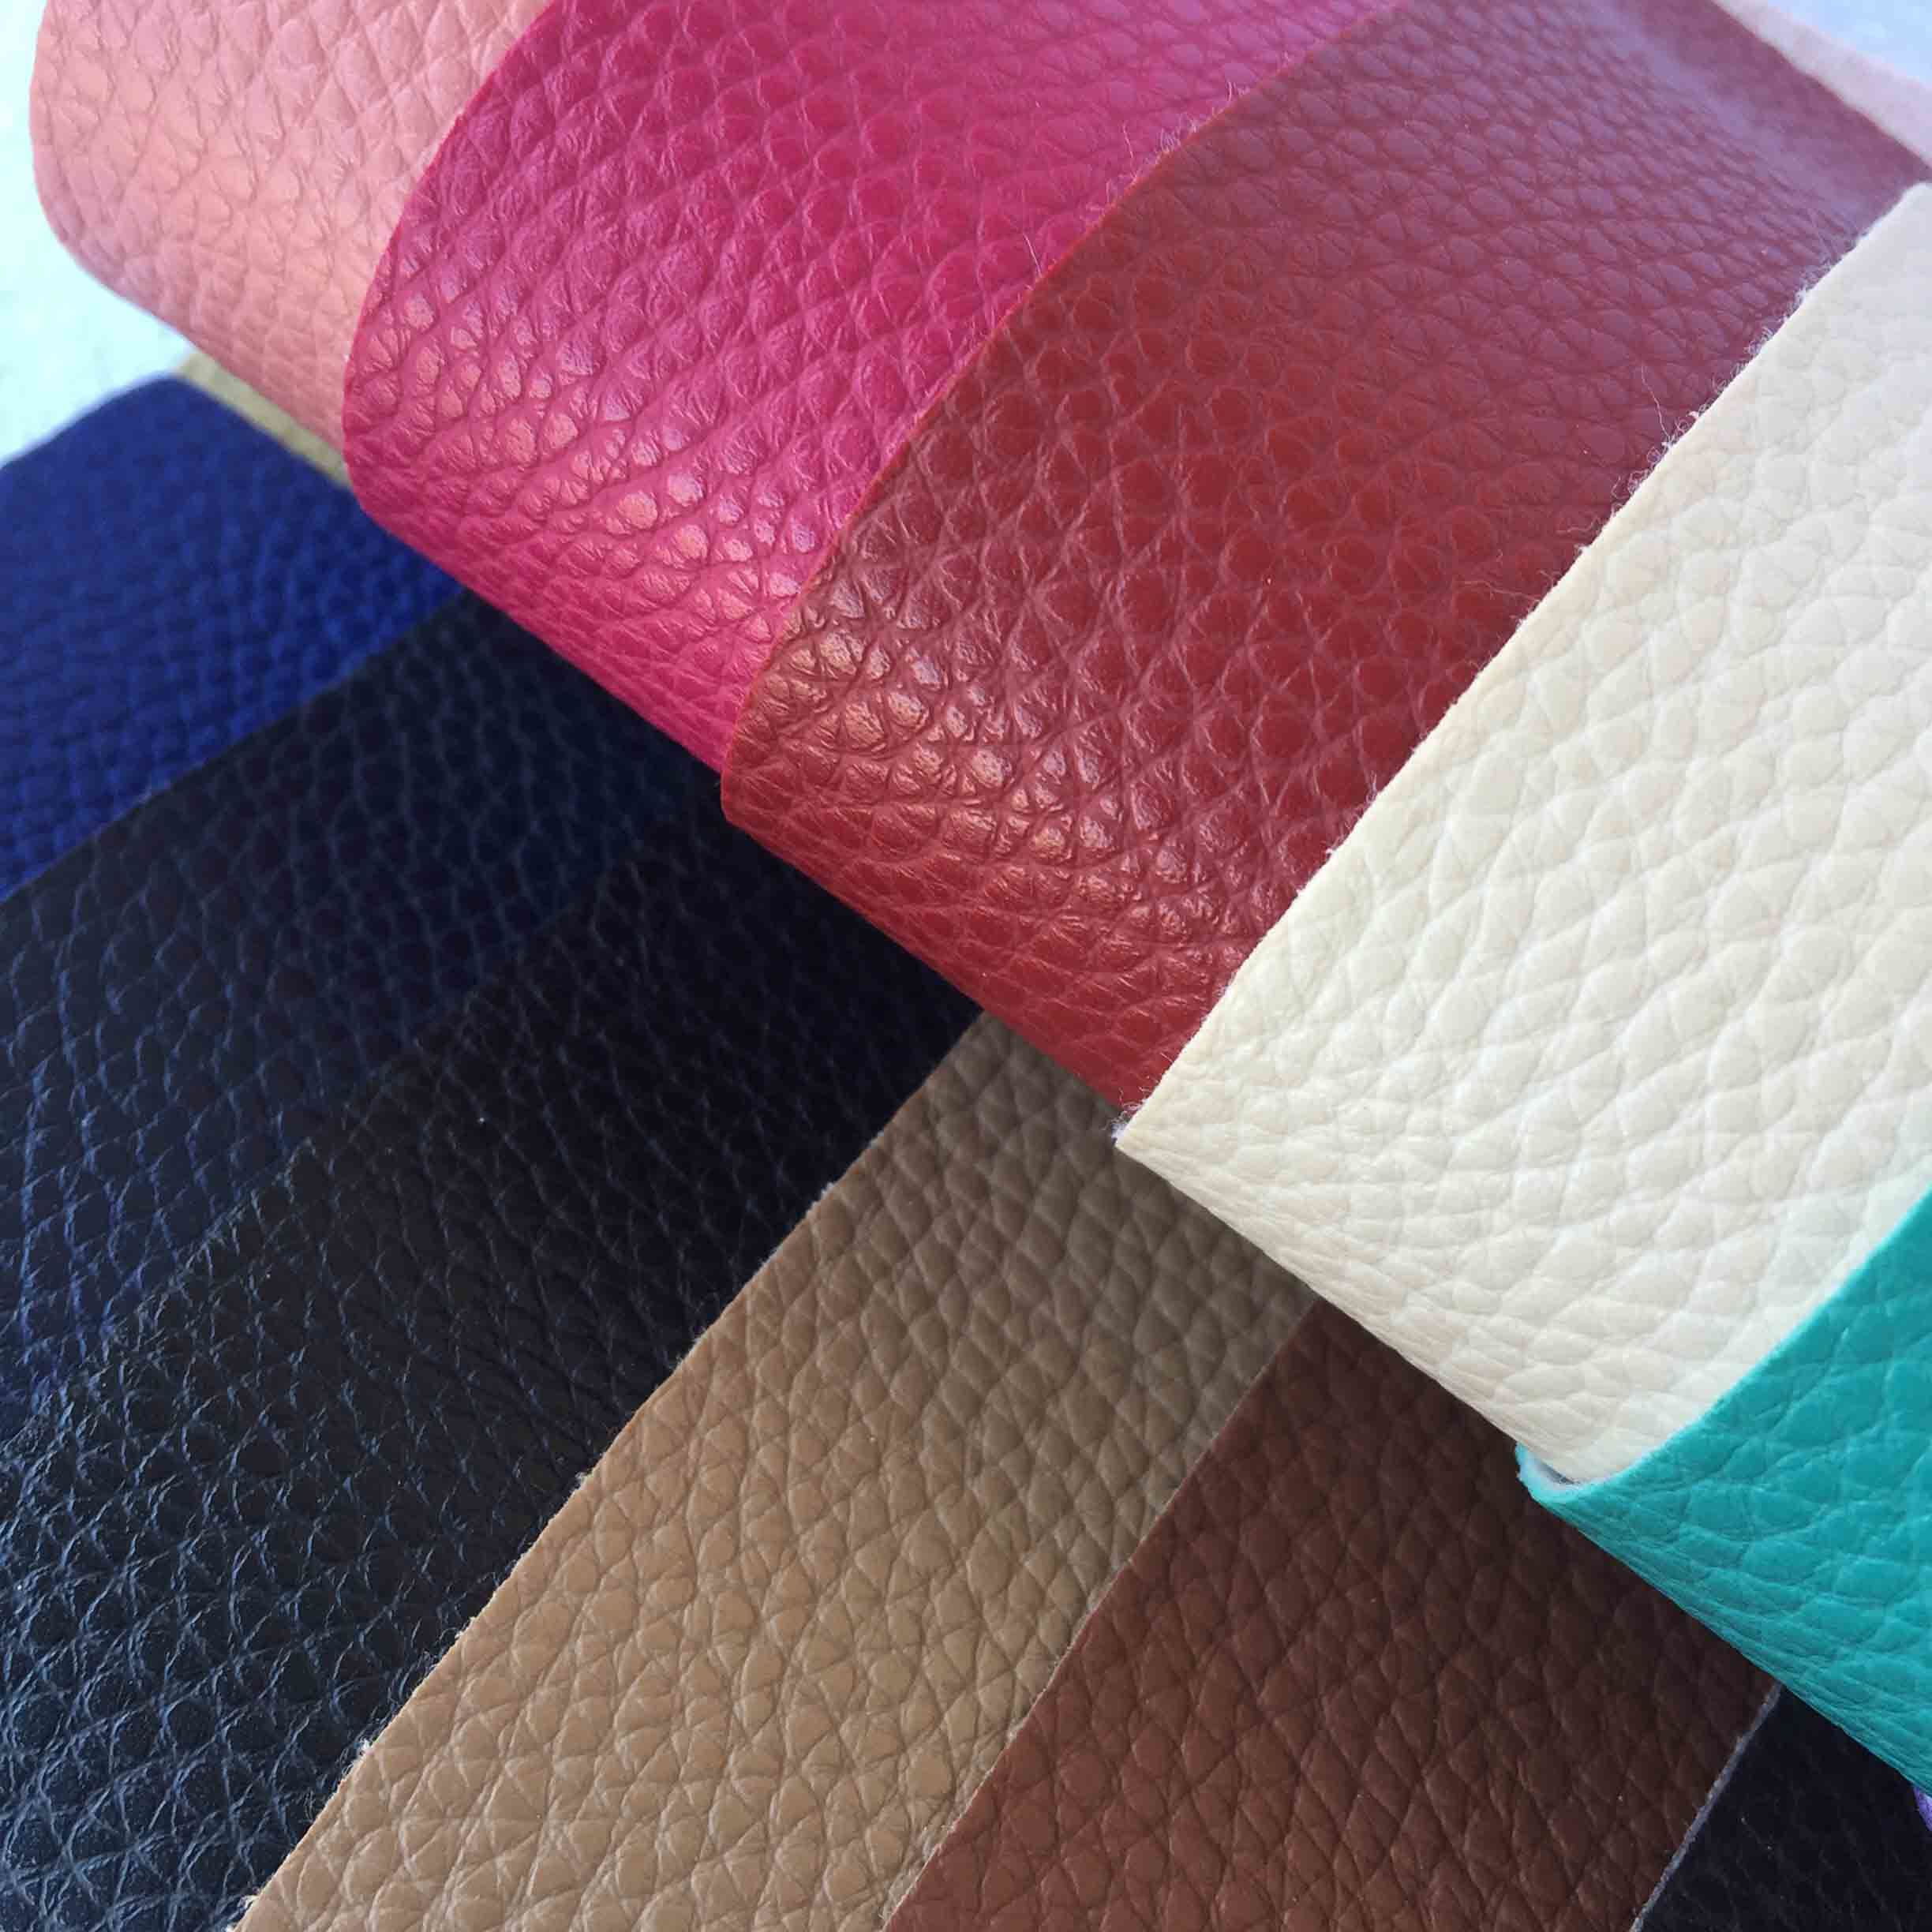 Geniune Leather Feeling Soft Sofa Cover Microfiber Leather PVC Synthetic Leather